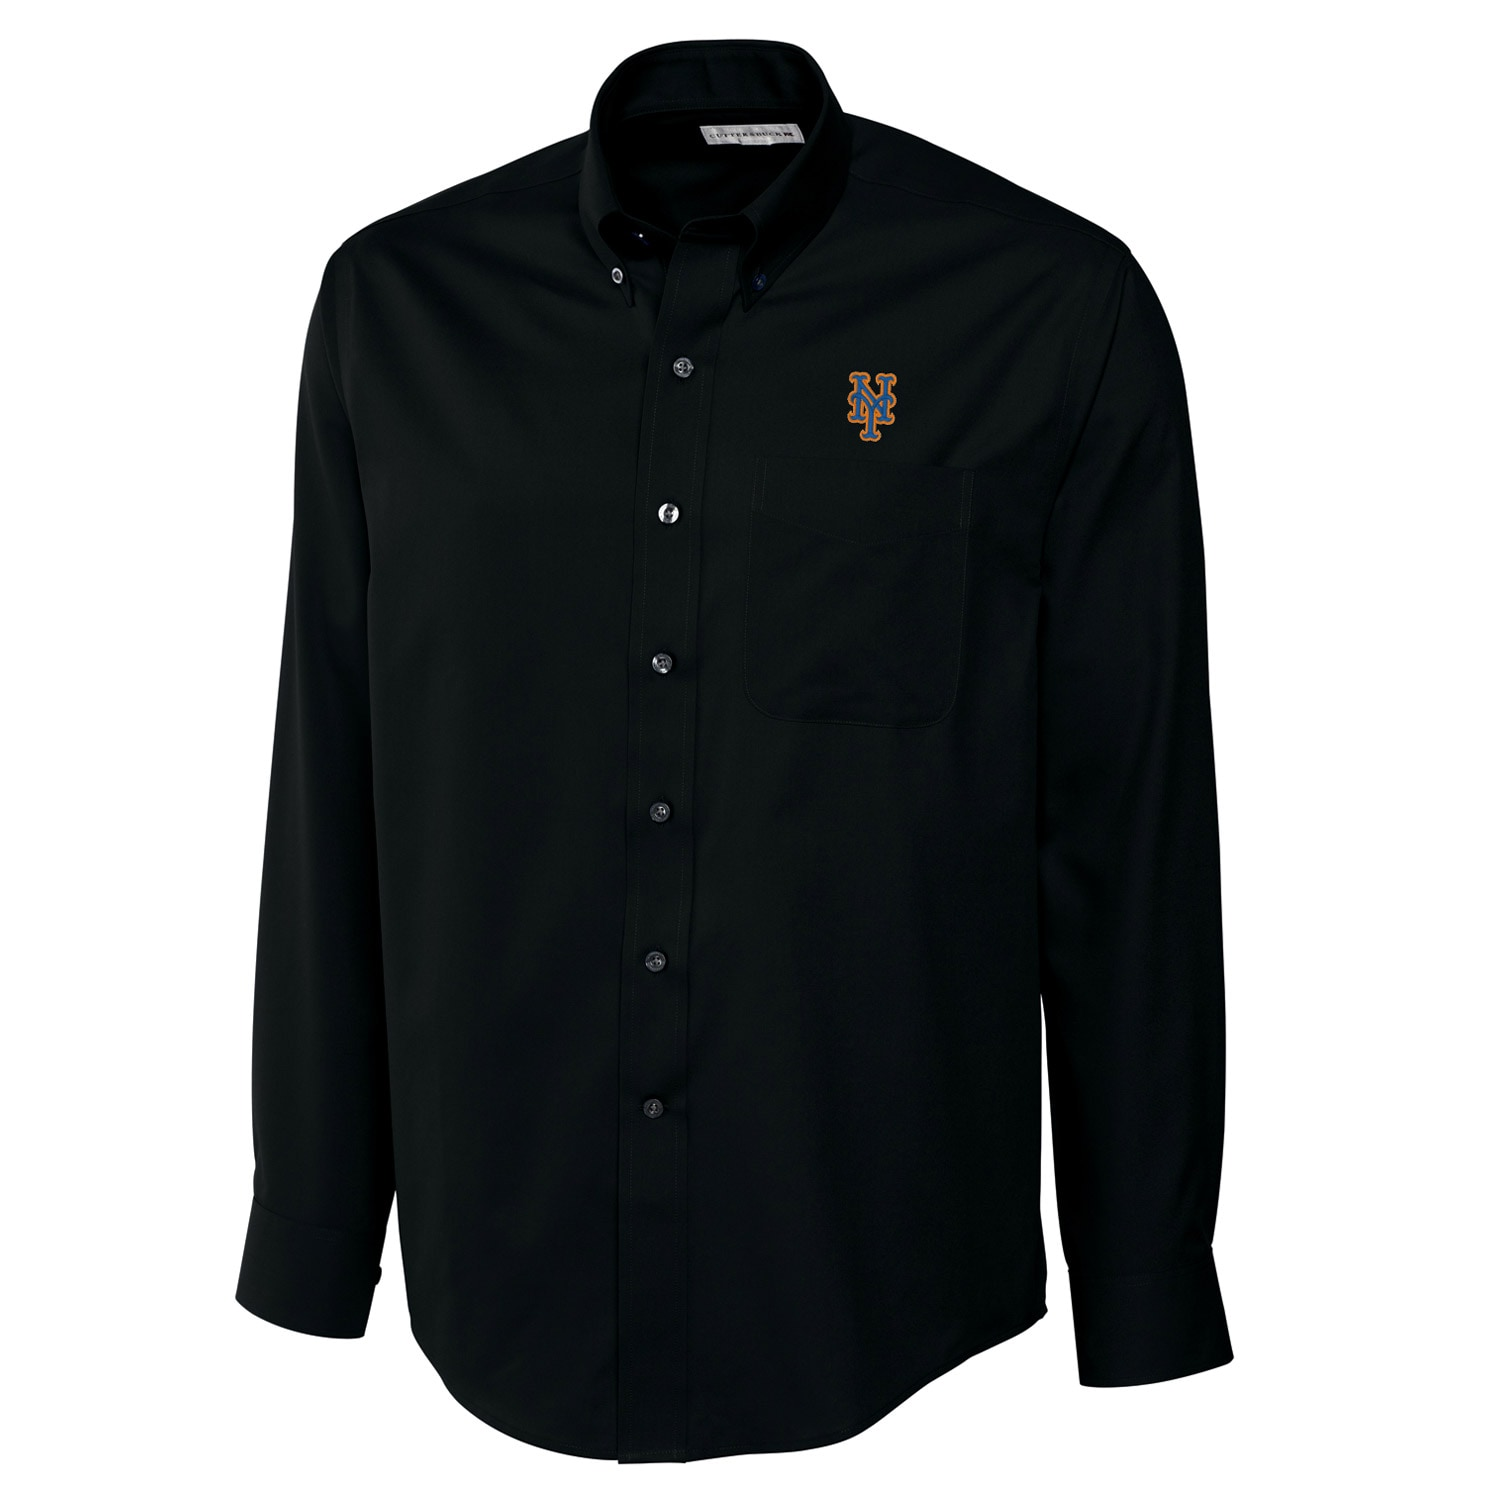 New York Mets Cutter & Buck Big & Tall Epic Easy Care Fine Twill Long Sleeve Shirt - Black